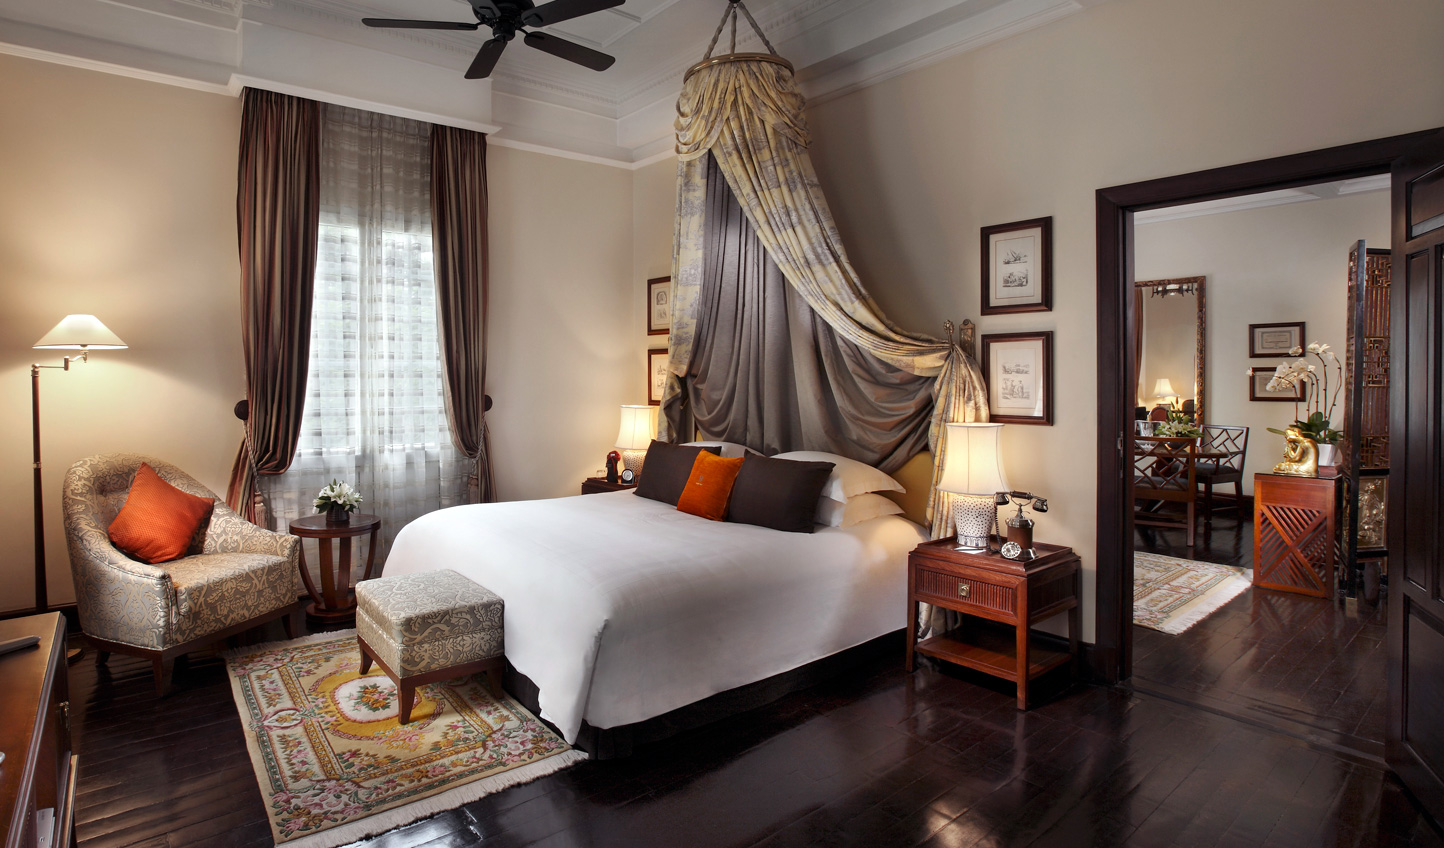 Rich fabrics and elegant interiors make for a luxurious stay